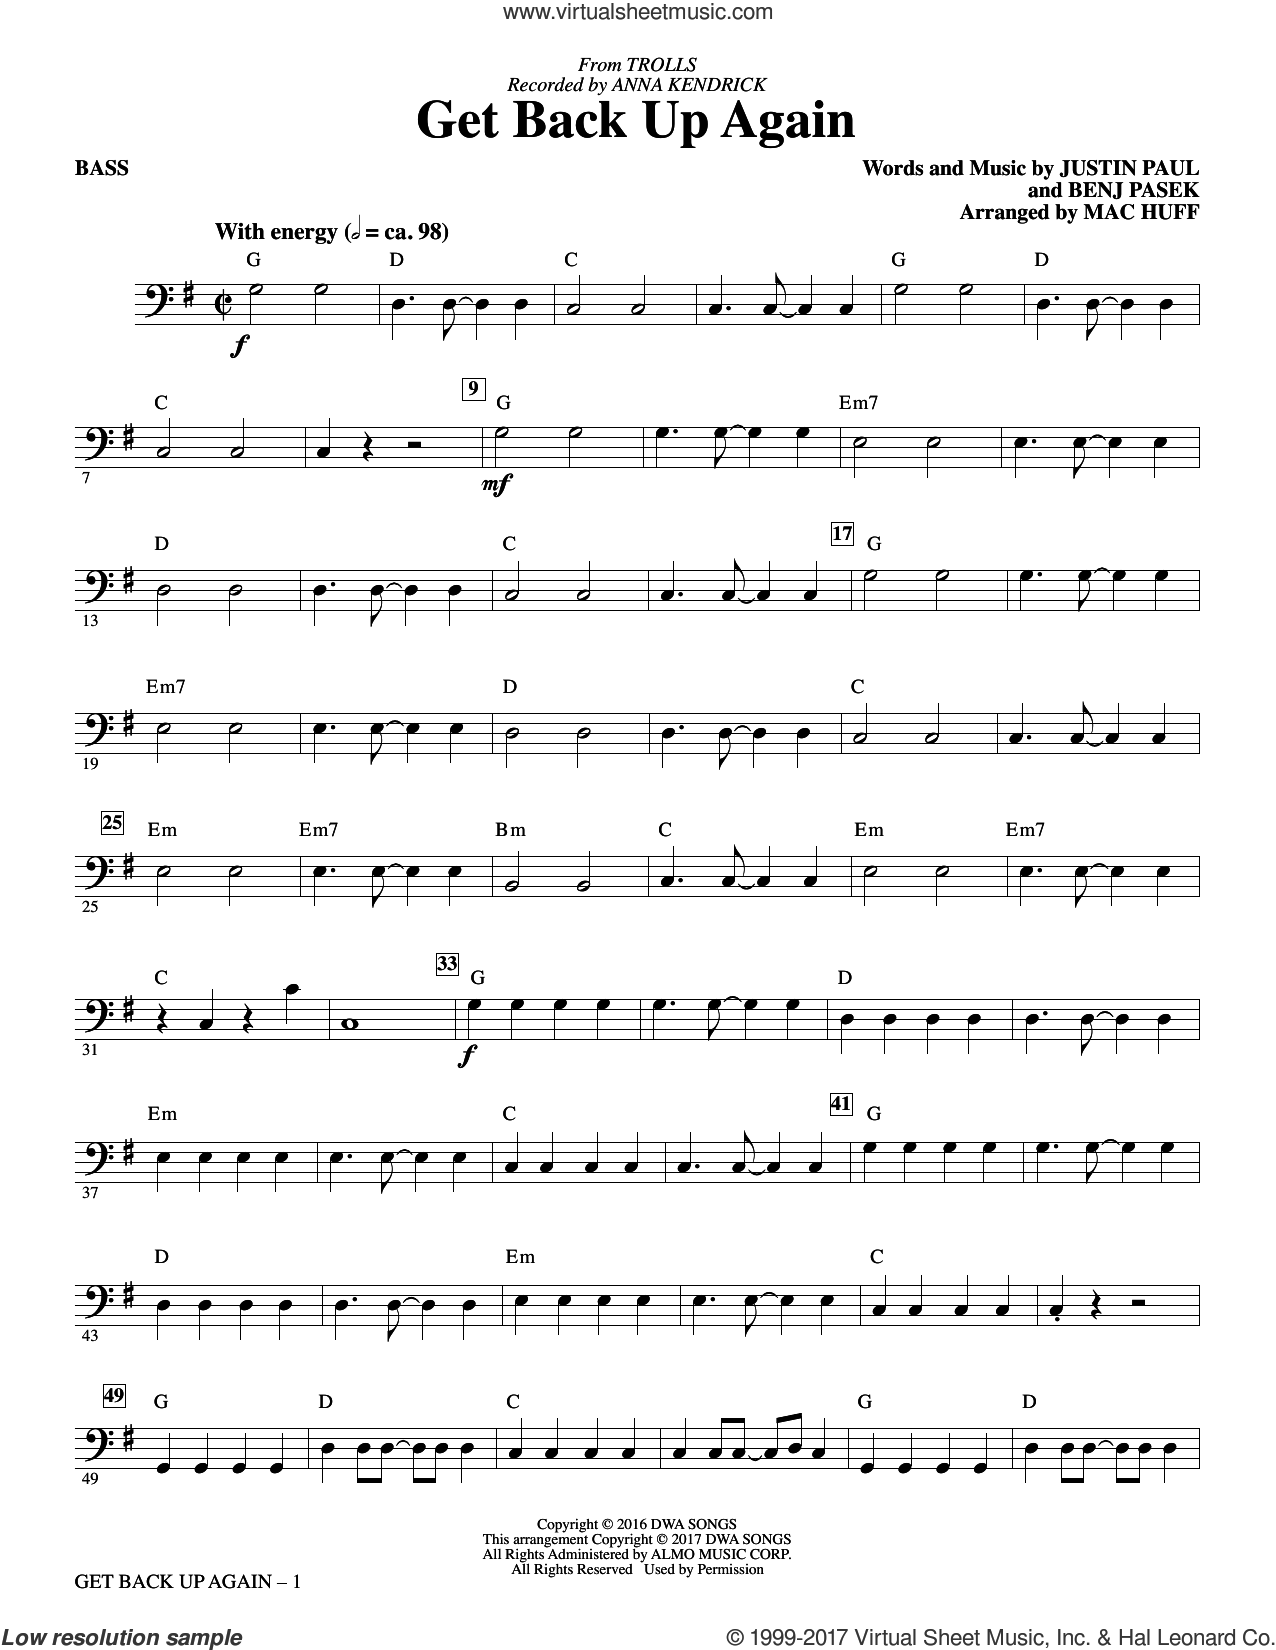 Get Back Up Again (from Trolls) sheet music for orchestra/band (bass) by Mac Huff, Anna Kendrick, Benj Pasek and Justin Paul. Score Image Preview.